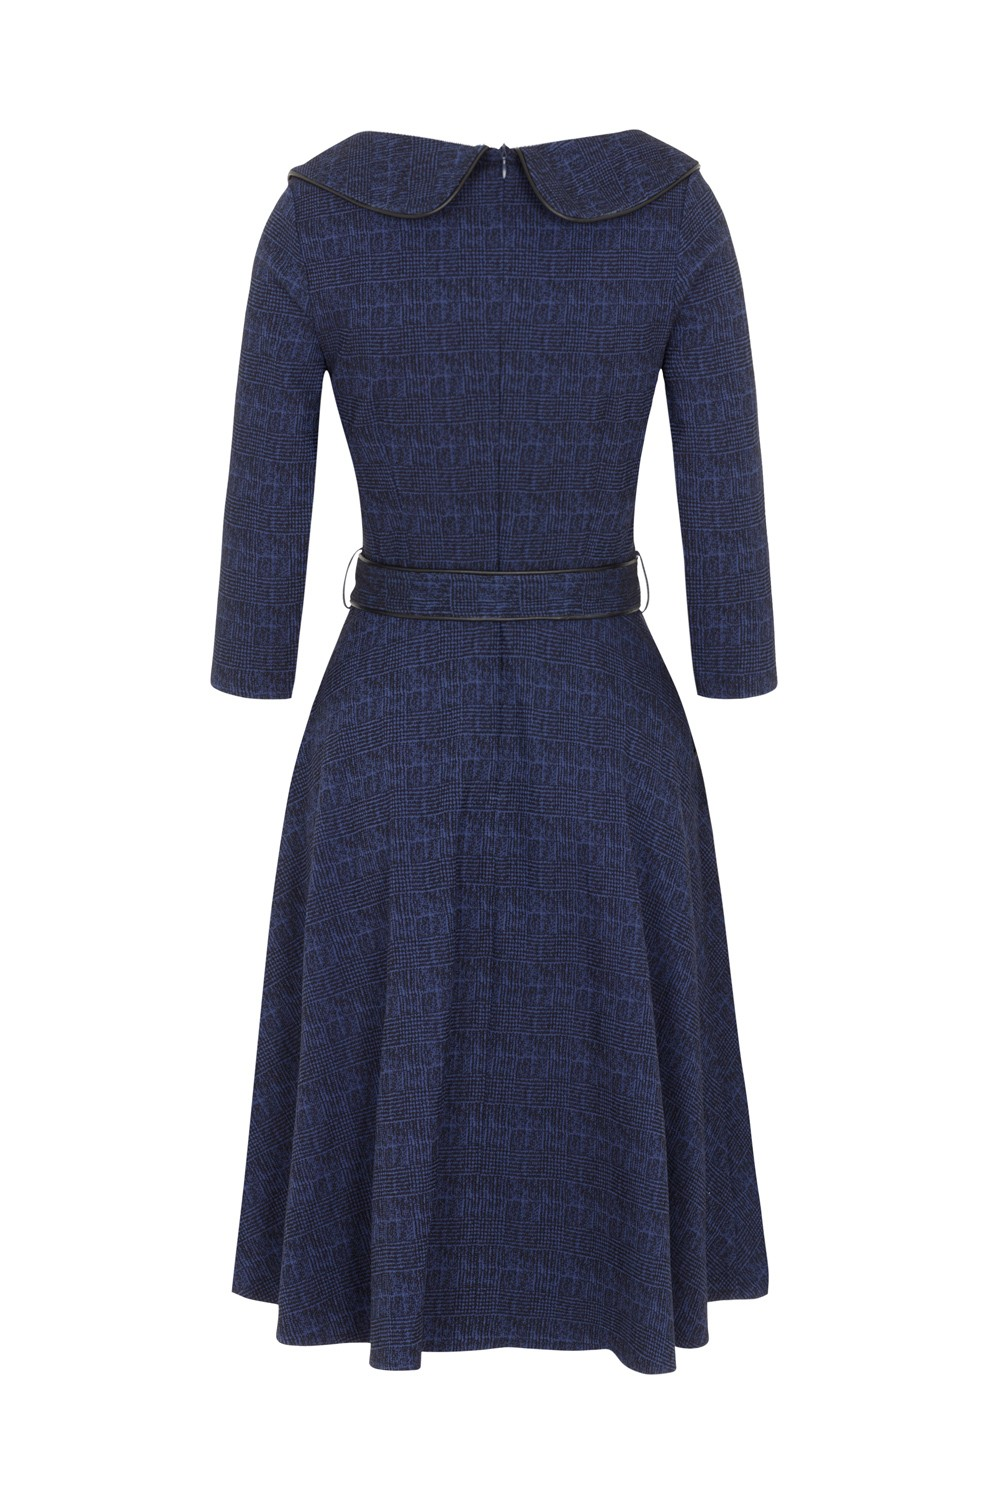 Voodoo Vixen Lilly 40s Blue Swing Dress